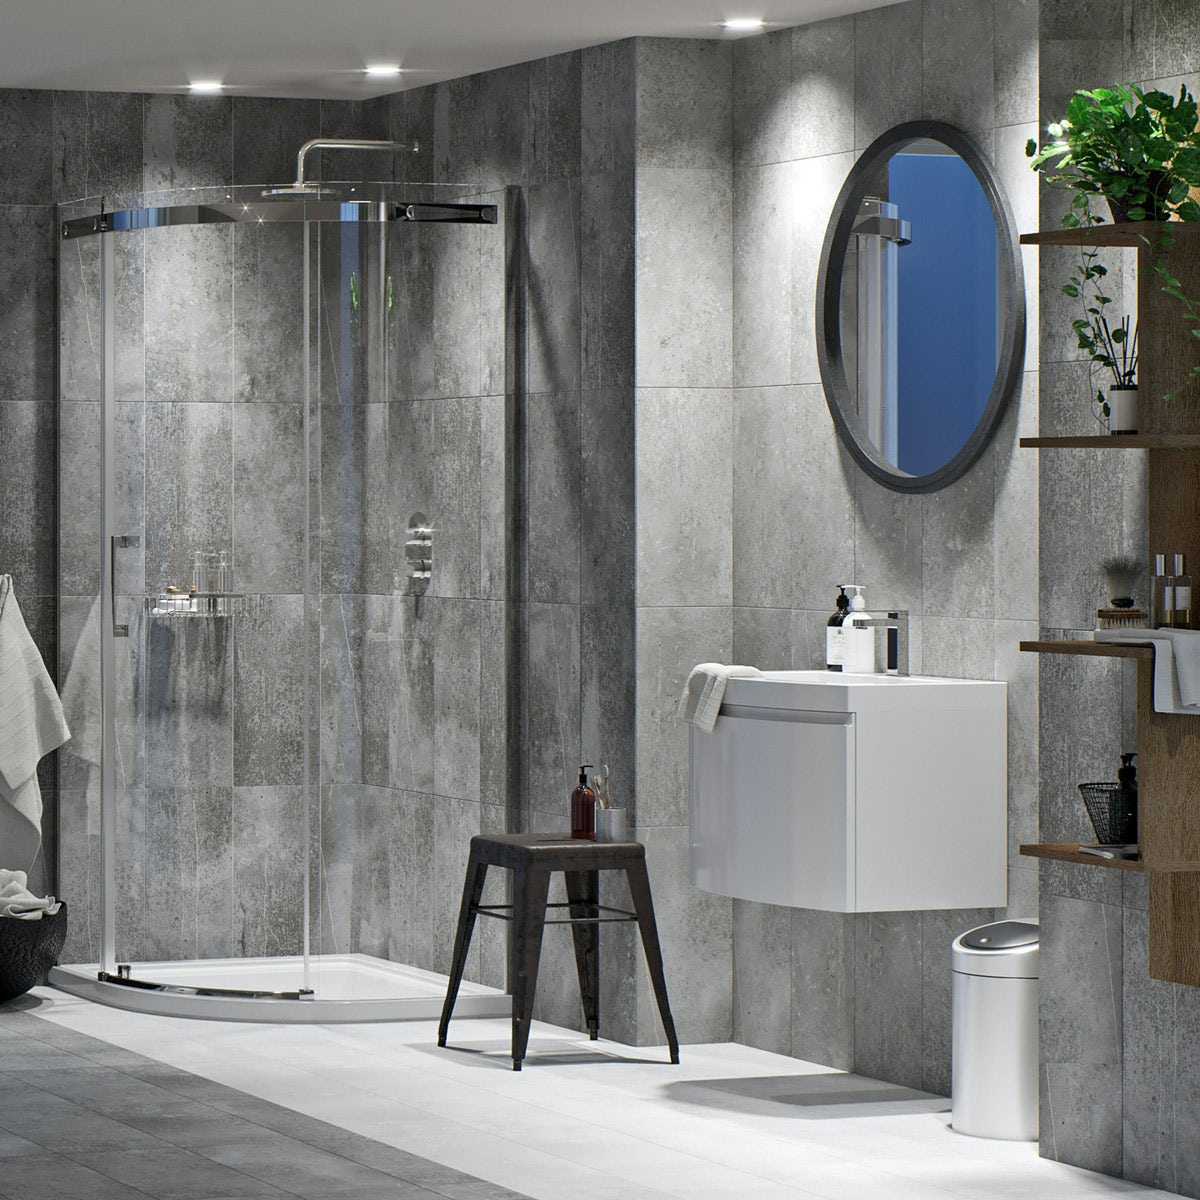 Mode Harrison complete wall hung suite with taps, shower and wastes